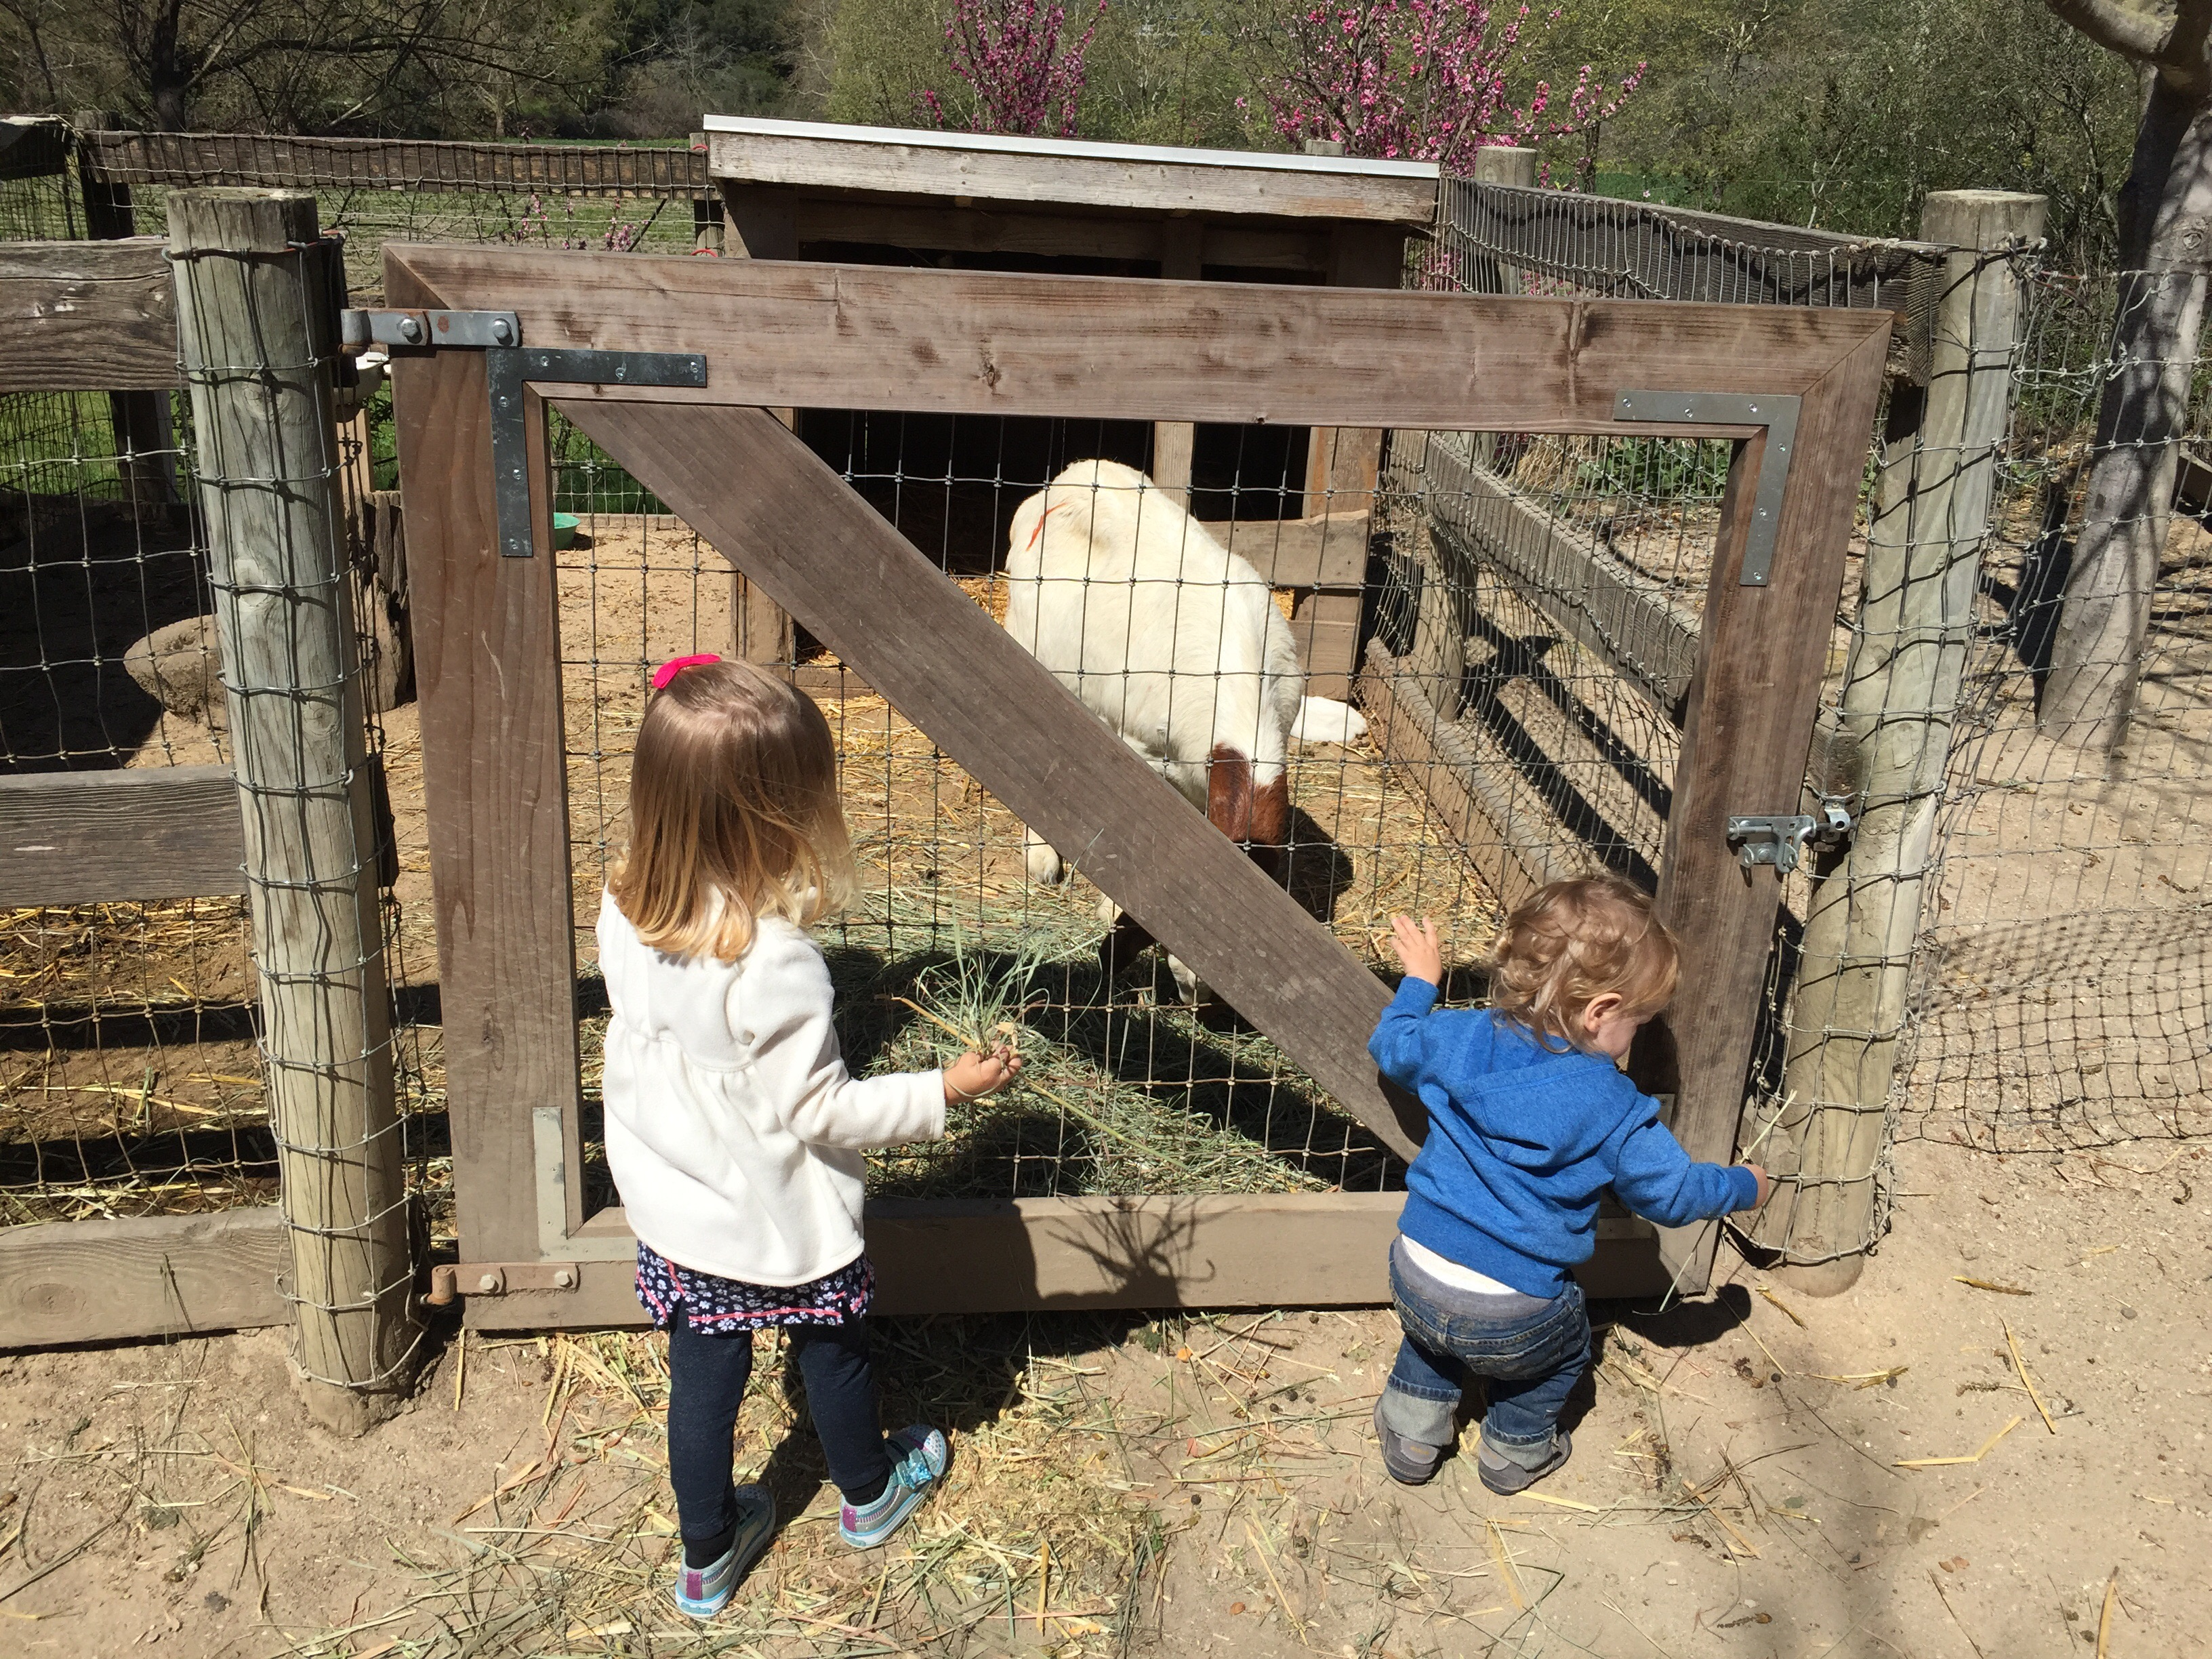 Toddler and baby feeding the goats at Avila Valley Barn in San Luis Obispo.